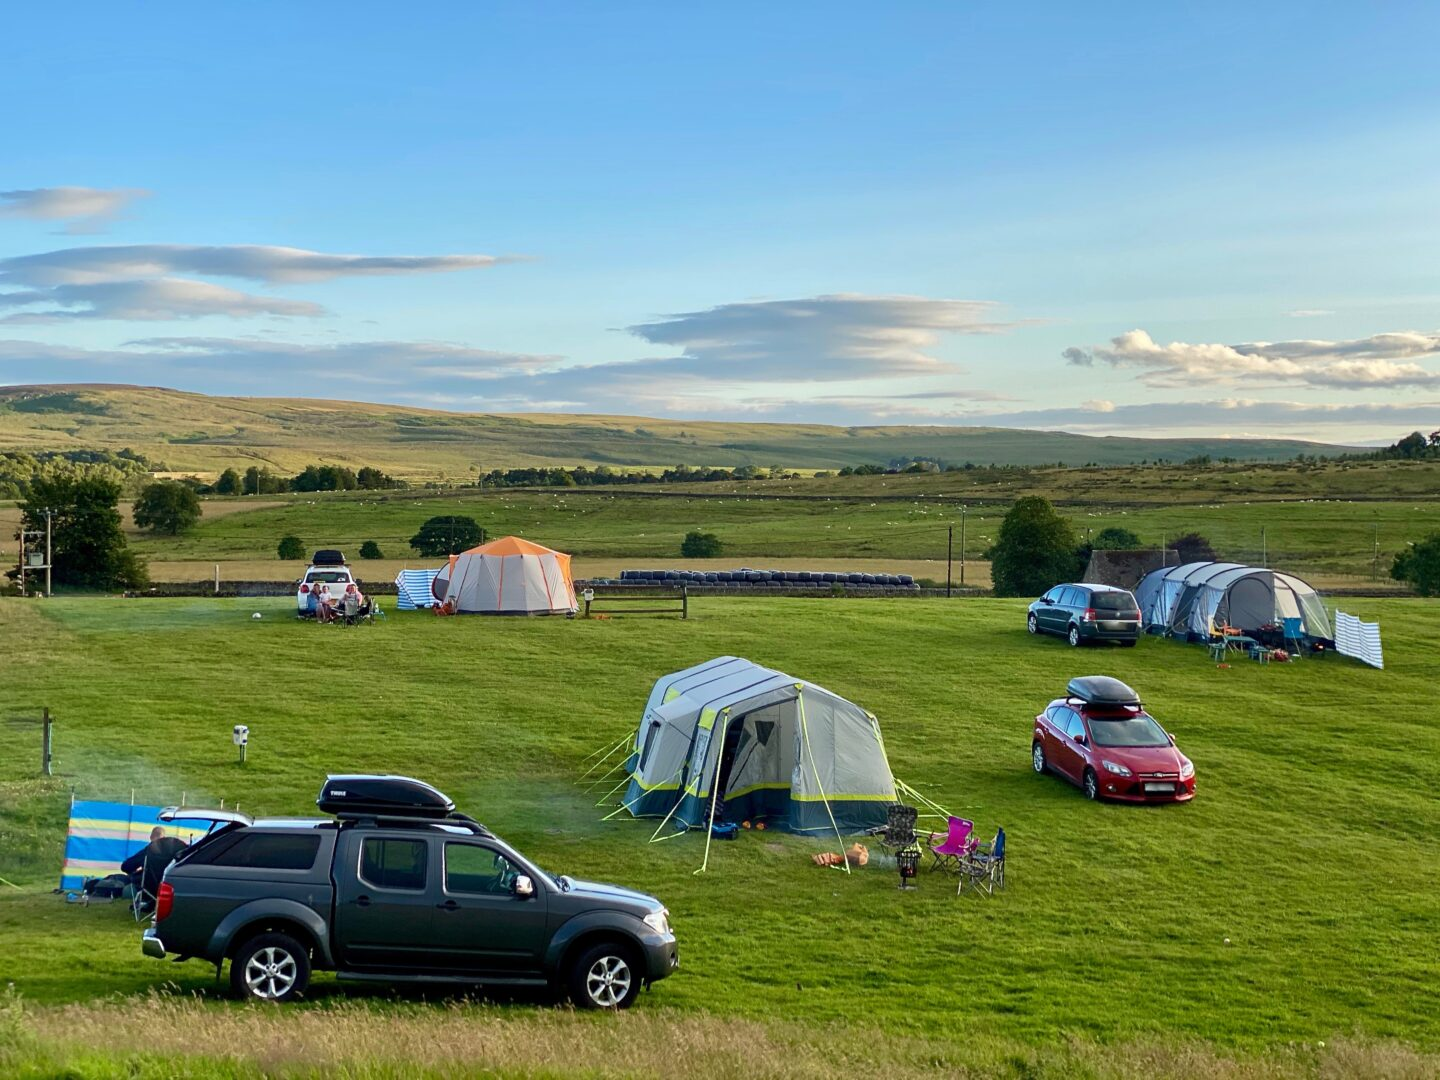 The Boe Rigg campsite - 3 tents and cars in a field